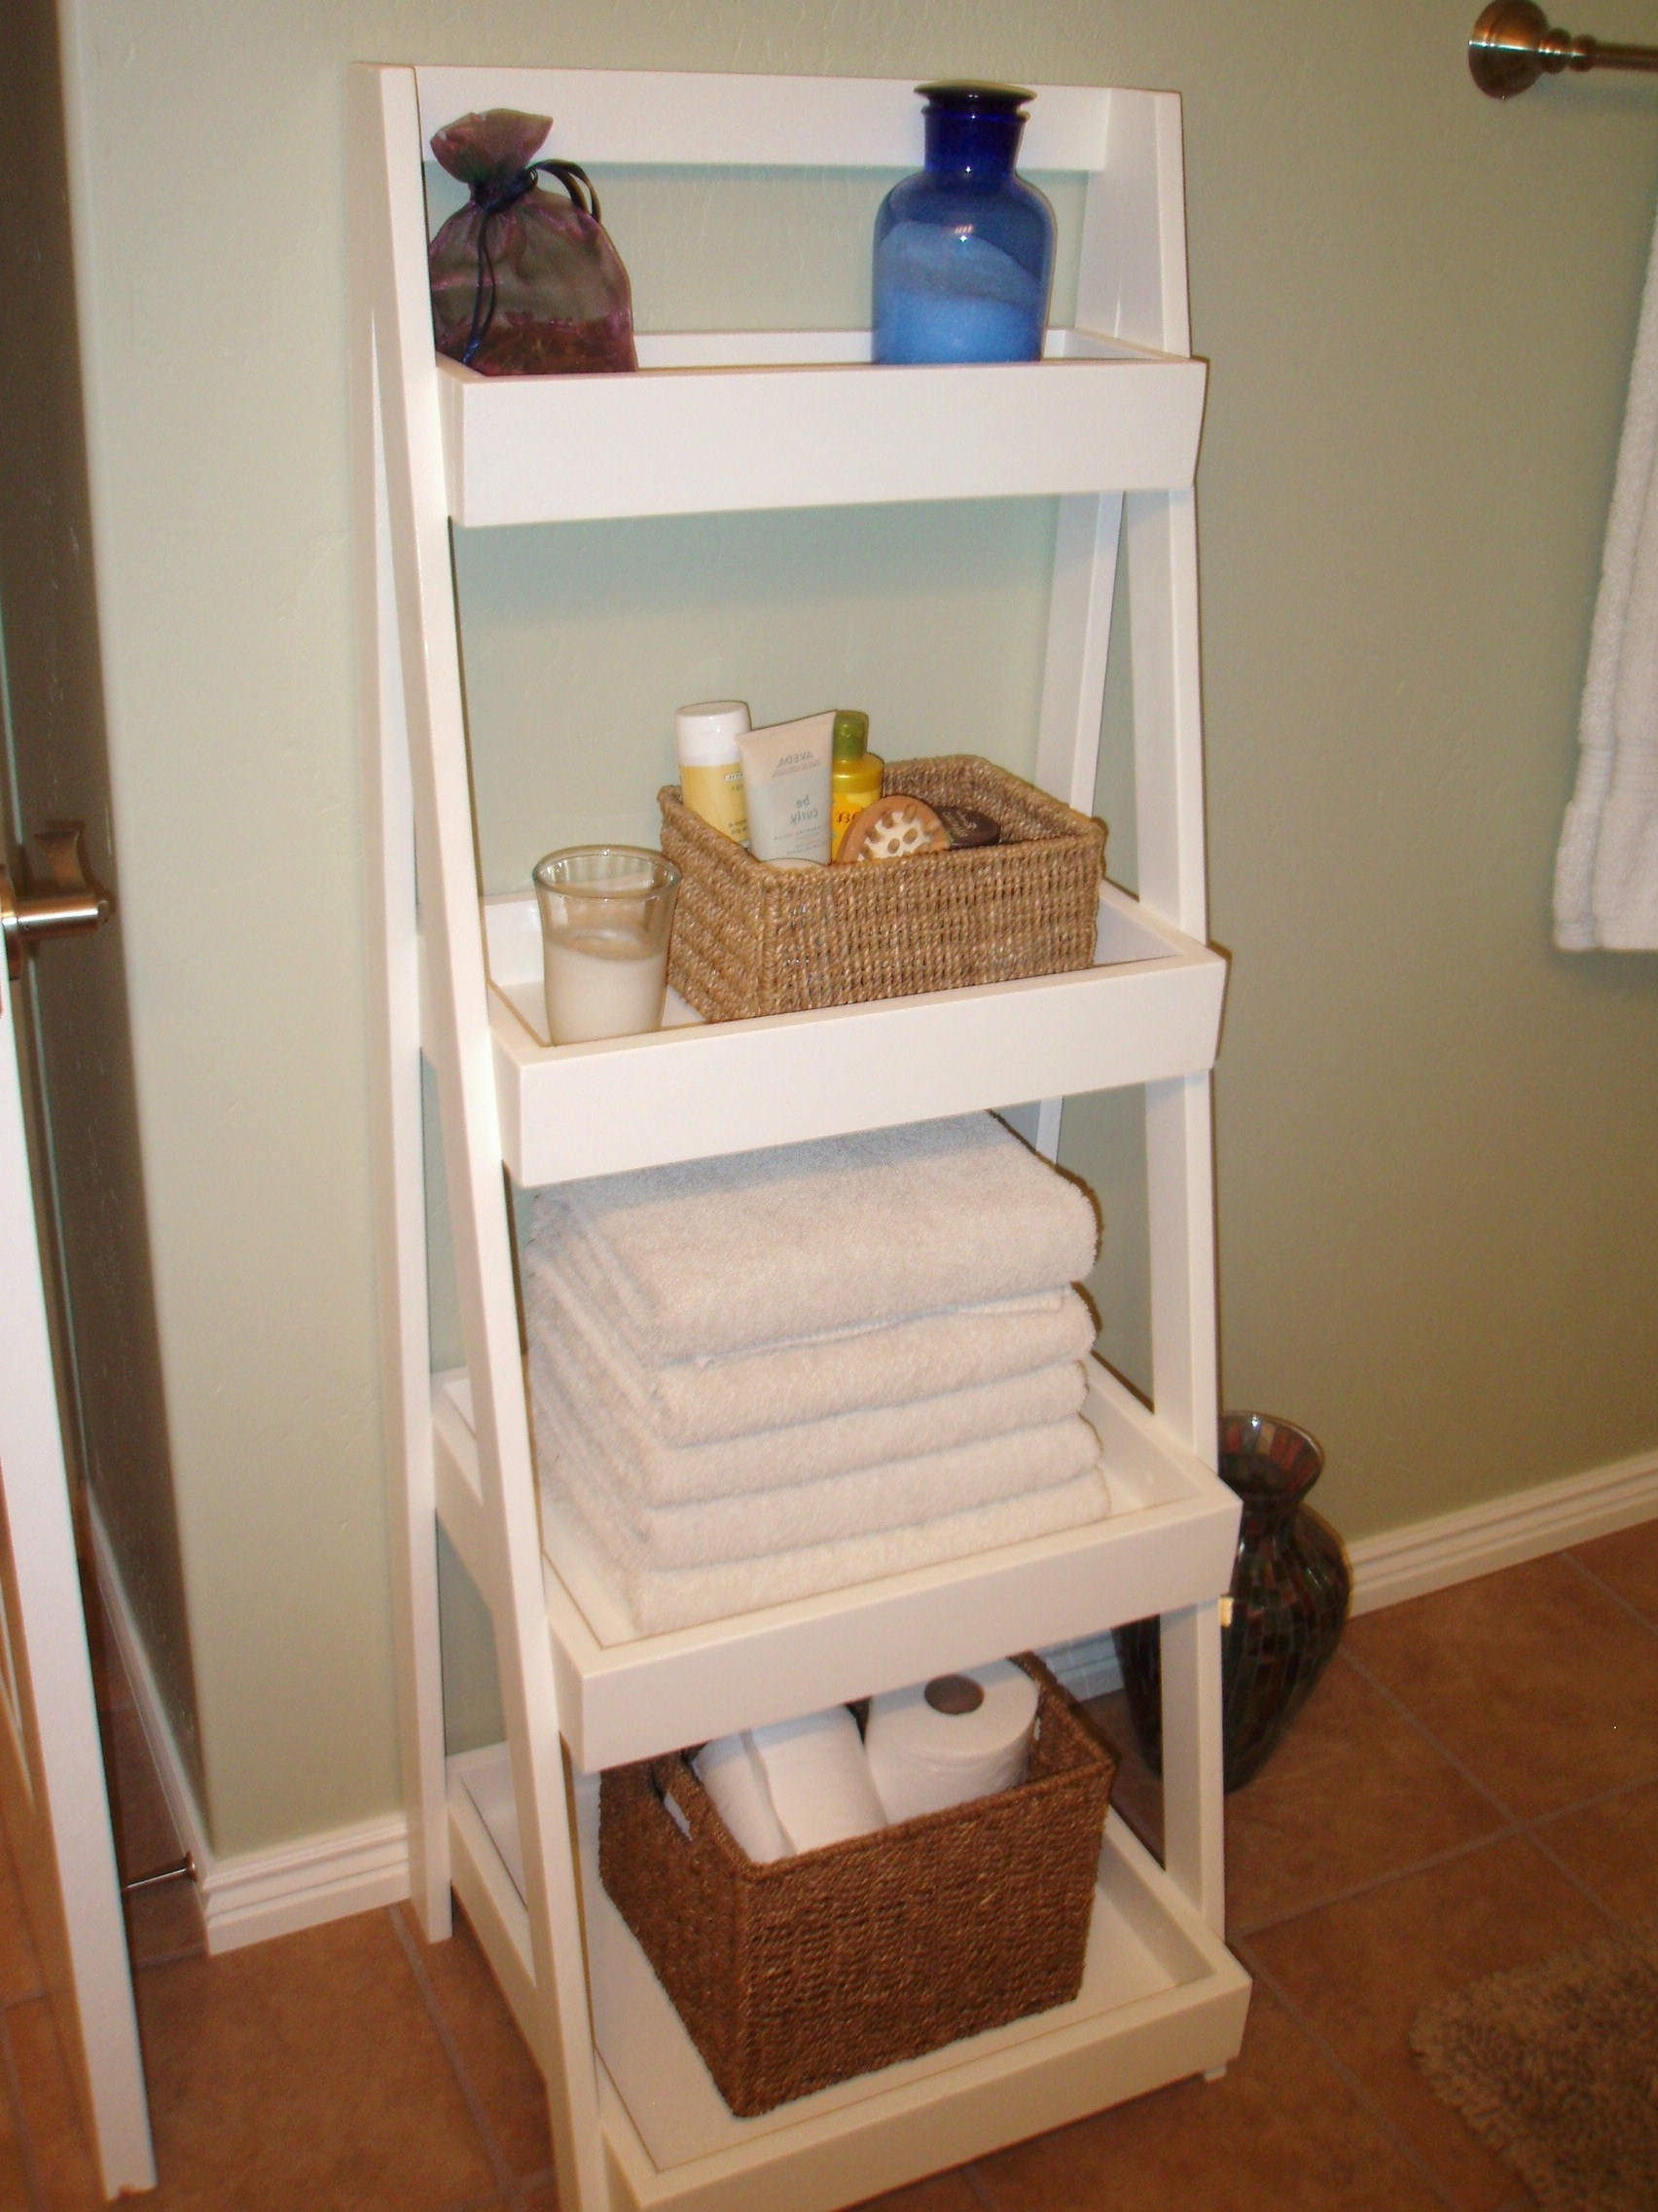 Our New Ladder Shelf! – Diy Projects Within Current White Ladder Shelf (View 8 of 15)